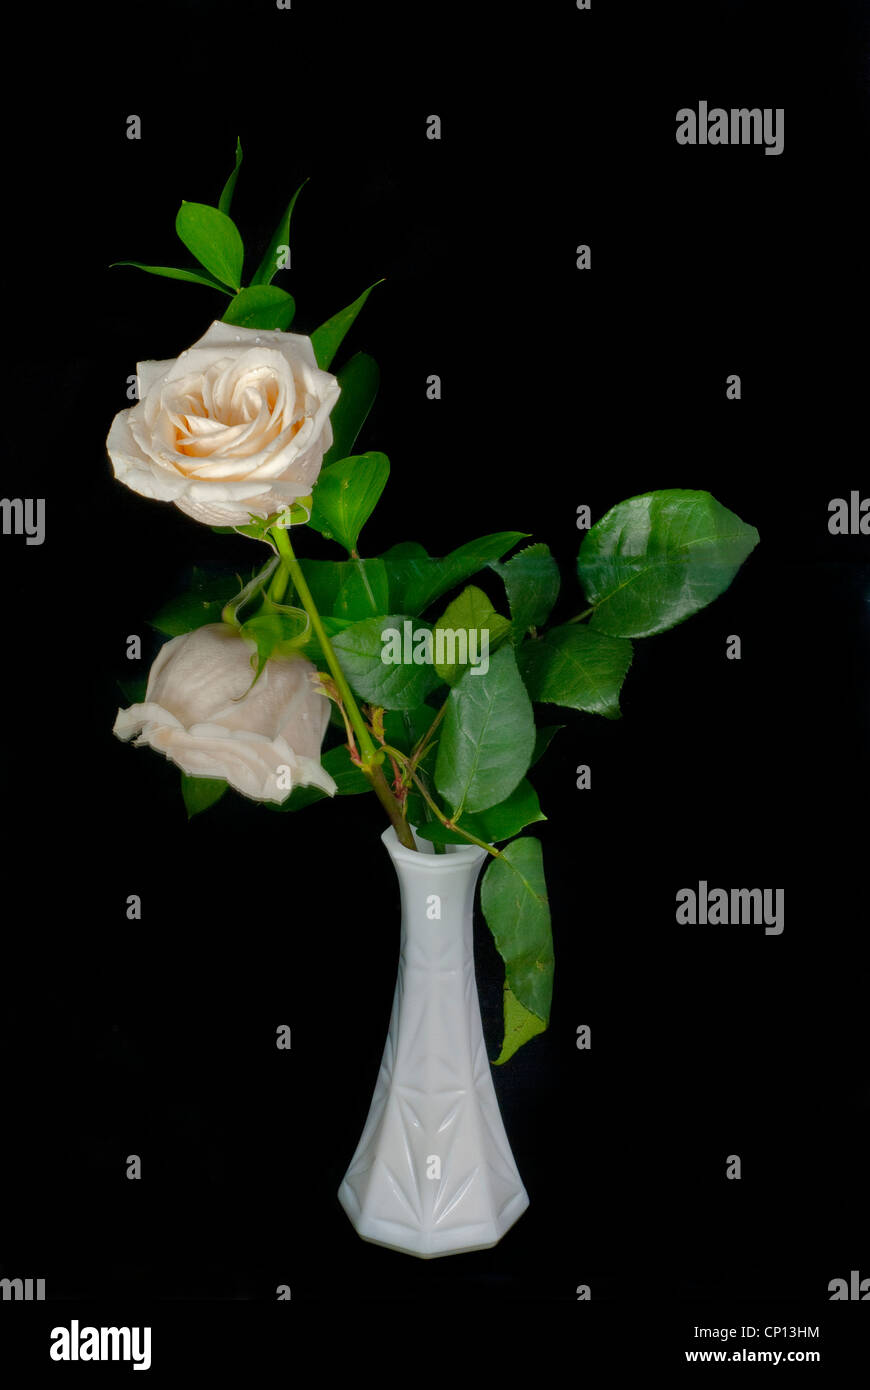 White Rose in a white vase with its reflection looking like 2 rose buds - Stock Image